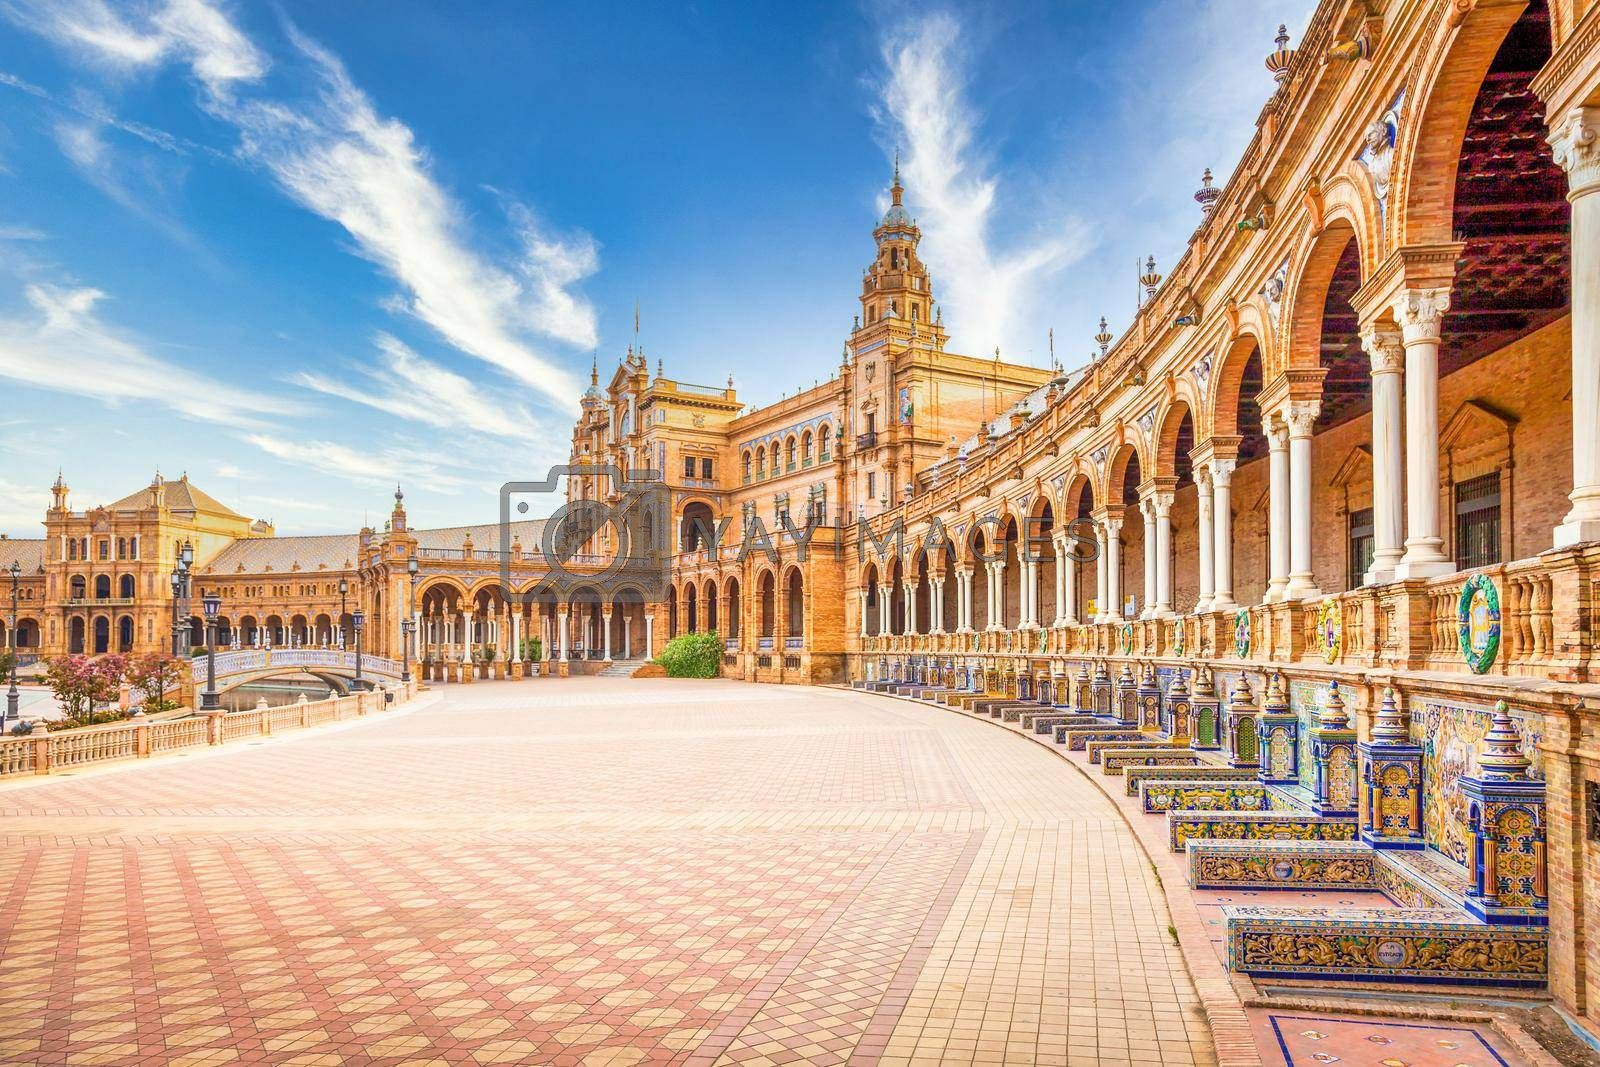 Royalty free image of Spain Square in Seville, Spain. A great example of Iberian Renaissance architecture during a summer day with blue sky by Perseomedusa